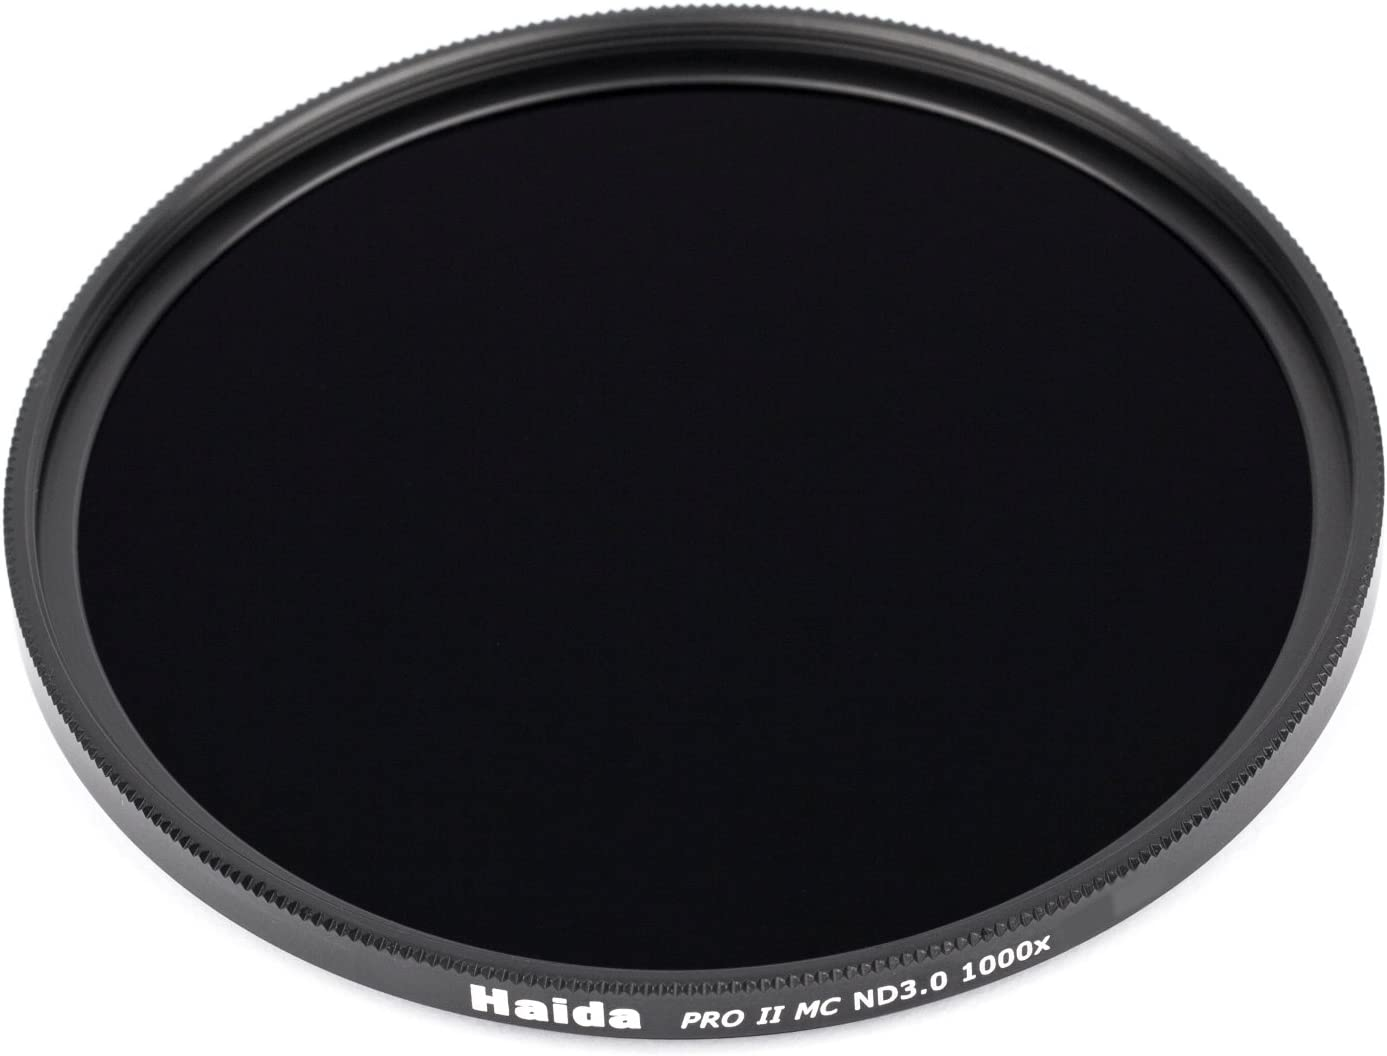 Haida 105mm PRO II Multi-Coated ND1000 Filter Neutral Density ND 105 10 Stop 3.0